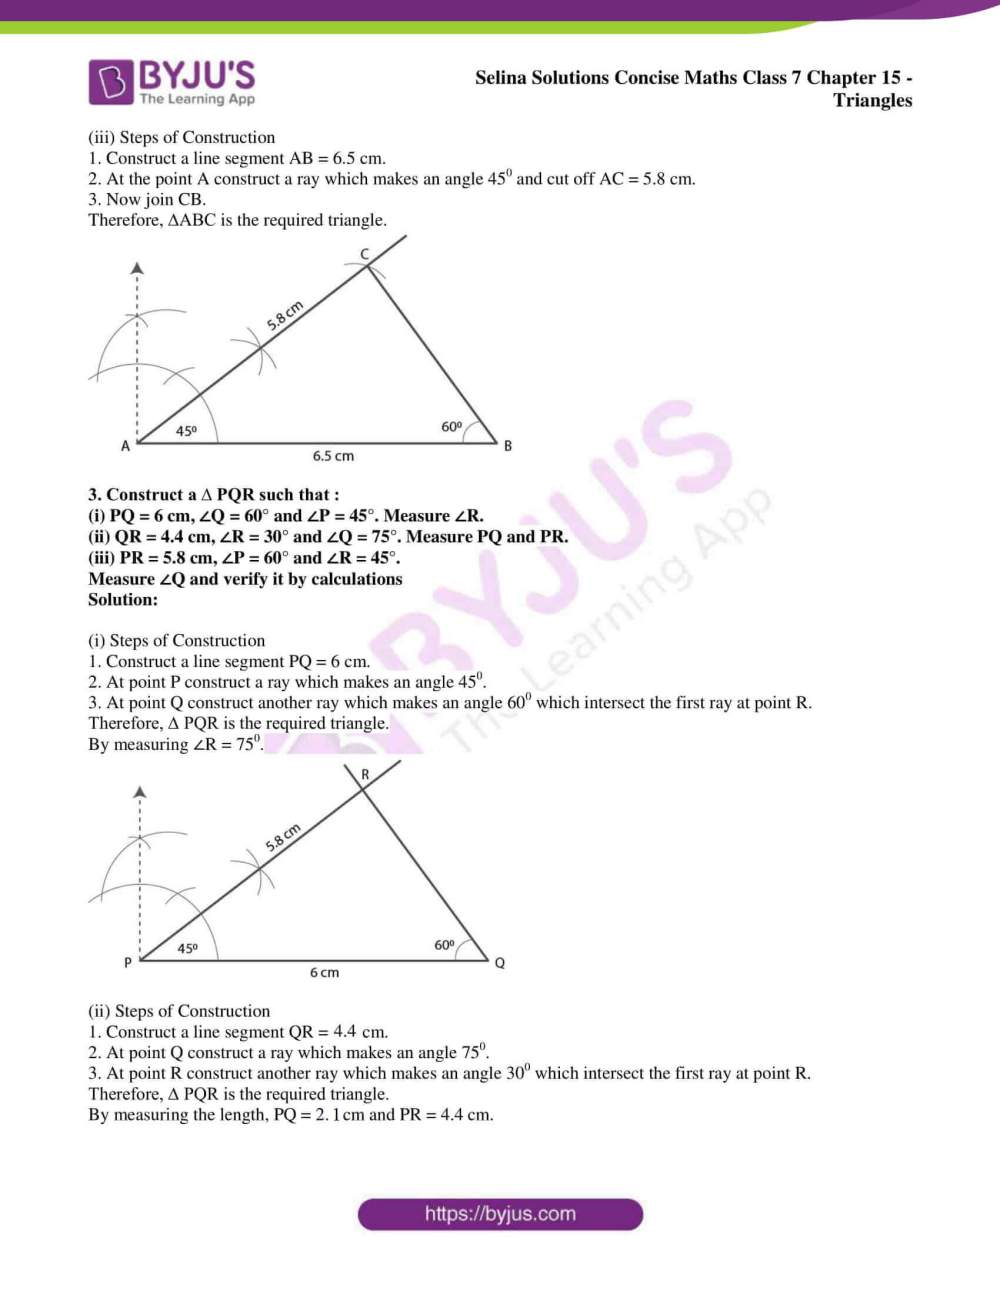 medium resolution of Selina Solutions Concise Maths Class 7 Chapter 15 Triangles Exercise 15C PDF